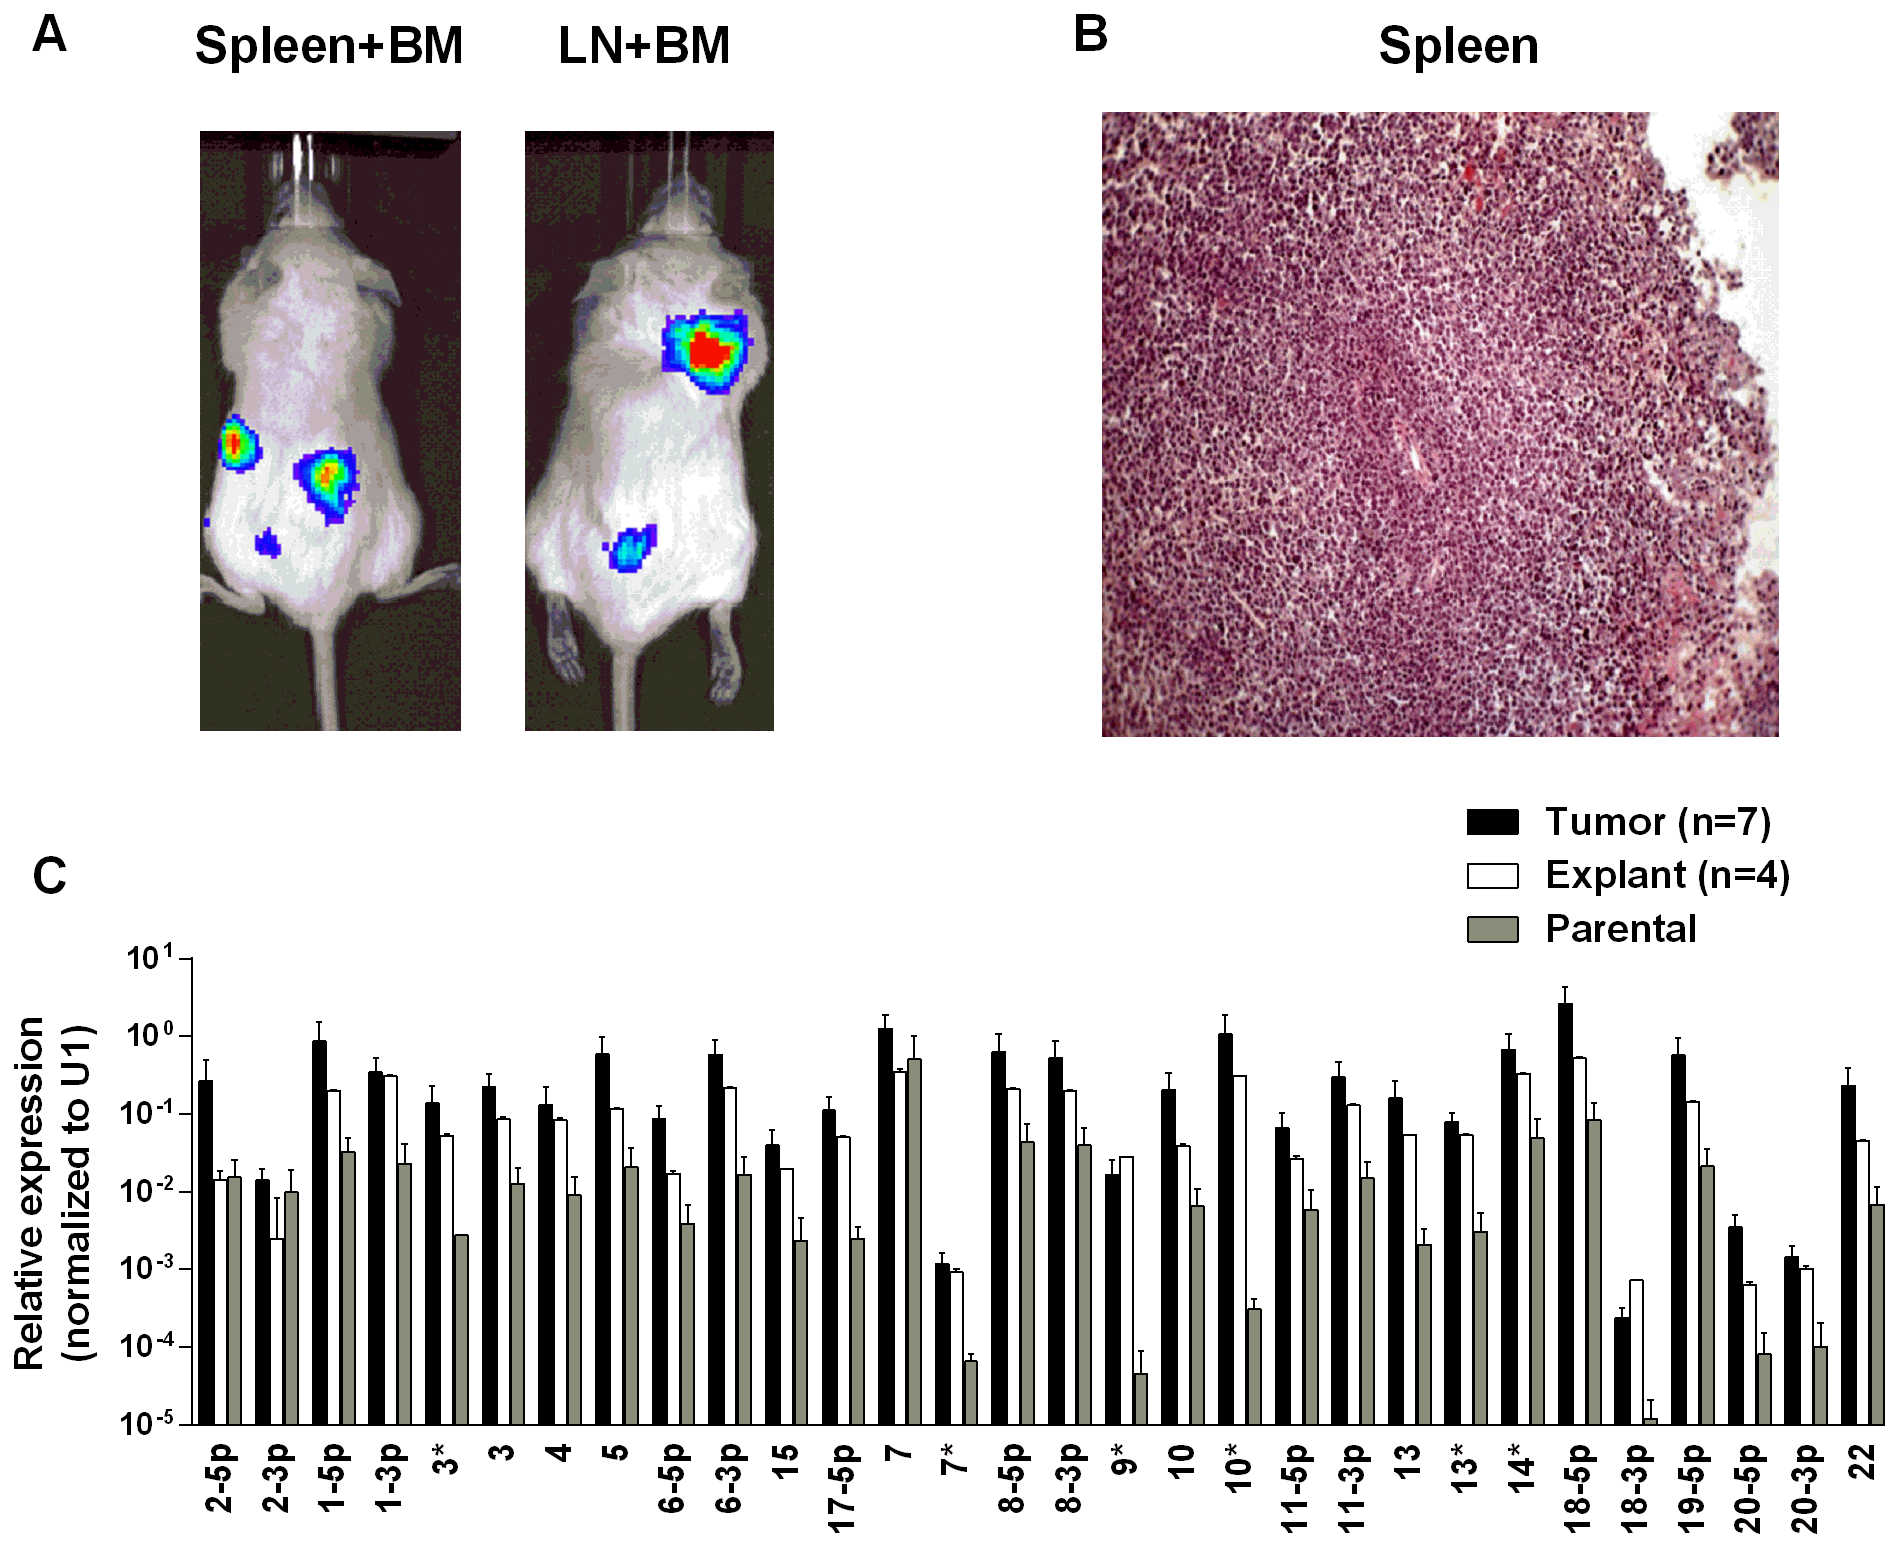 BART miRNA expression is up regulated when lymphoma cells grow <i>in vivo</i>.